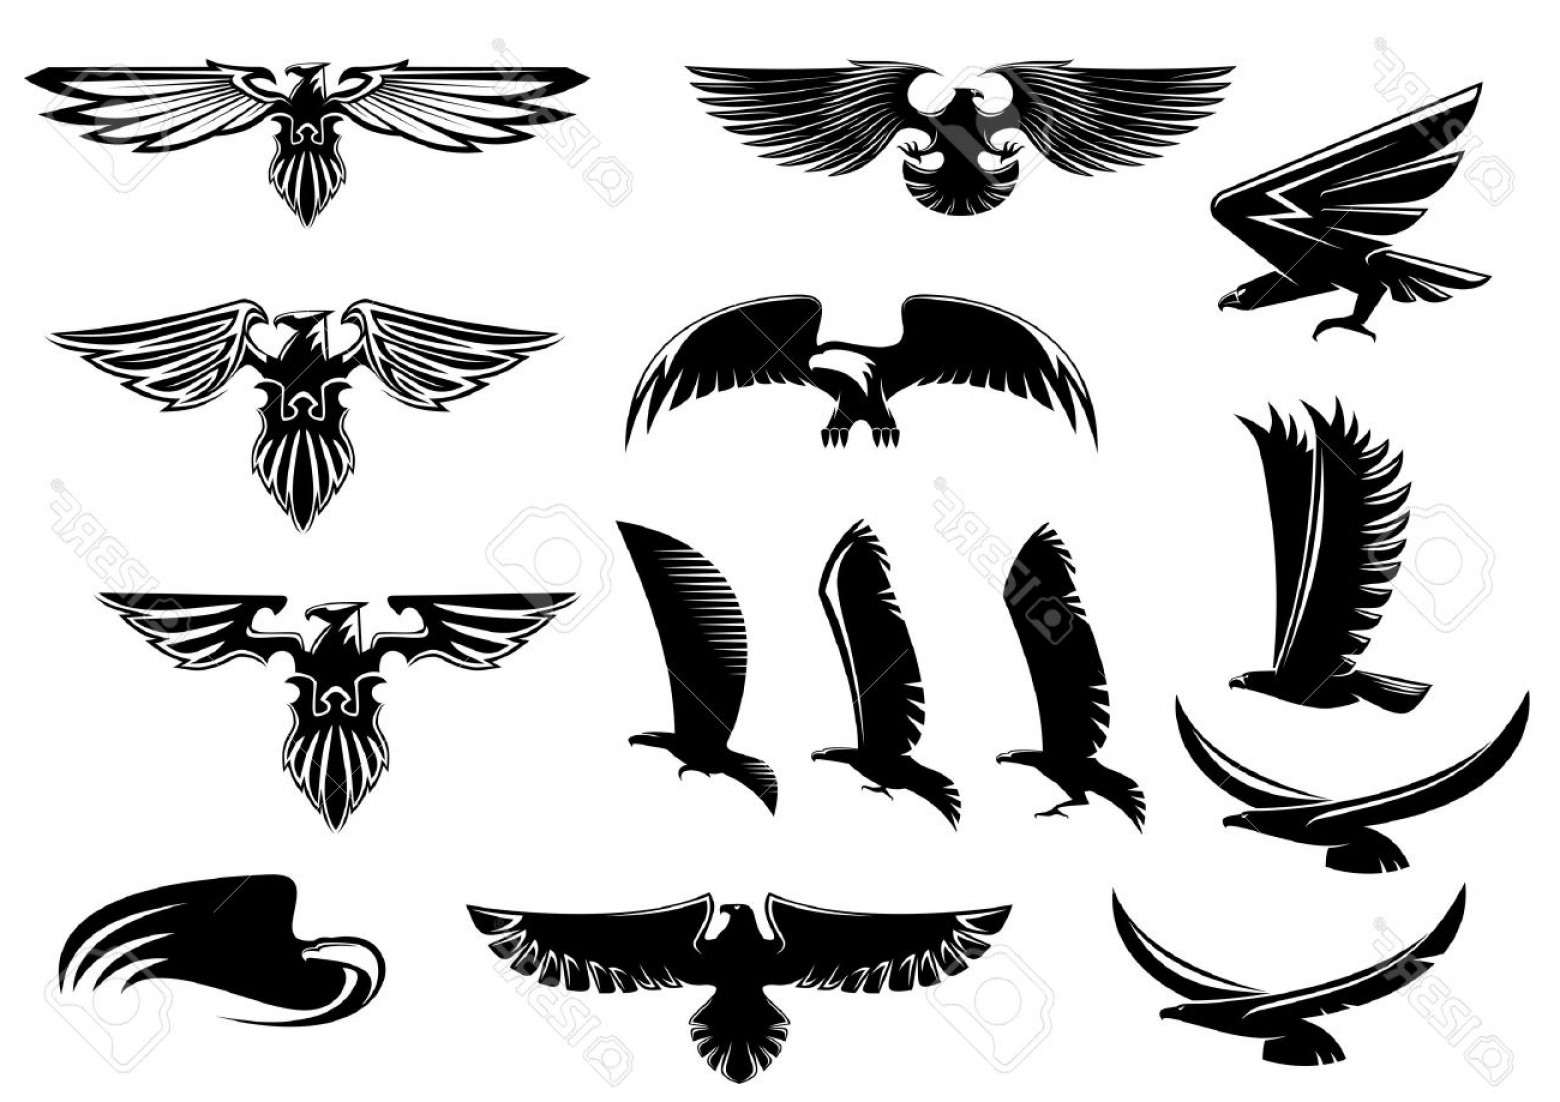 Falcon Wing Vector Art: Photostock Vector Eagle Falcon And Hawk Birds Vector Icons Showing The Bird Flying Or With Outspread Wings With Feathe